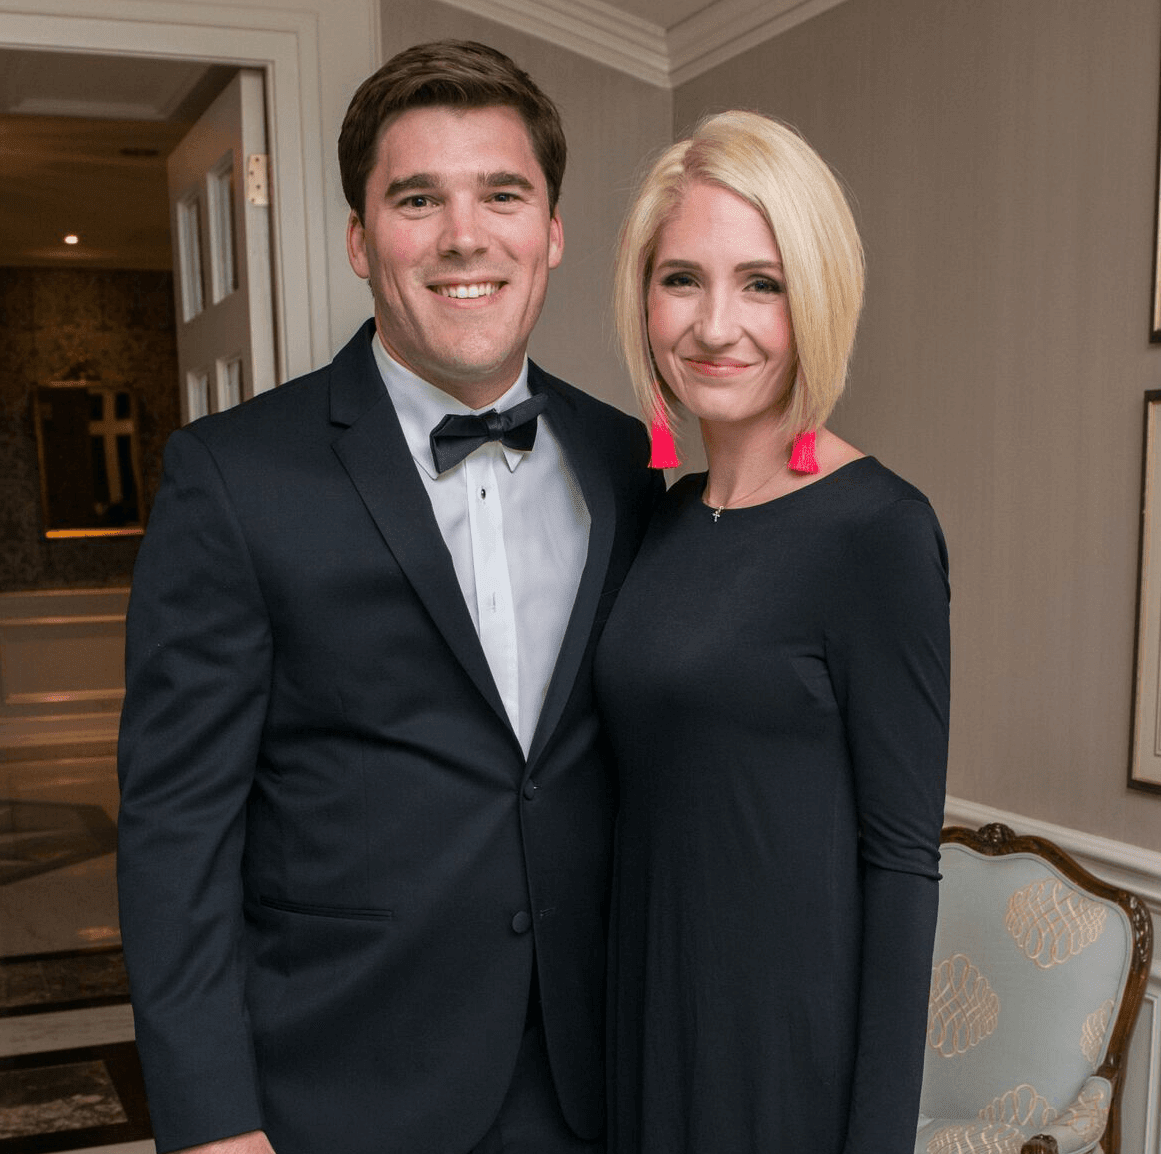 Chase Clements and Lauren Clements at Rice Honors Gala